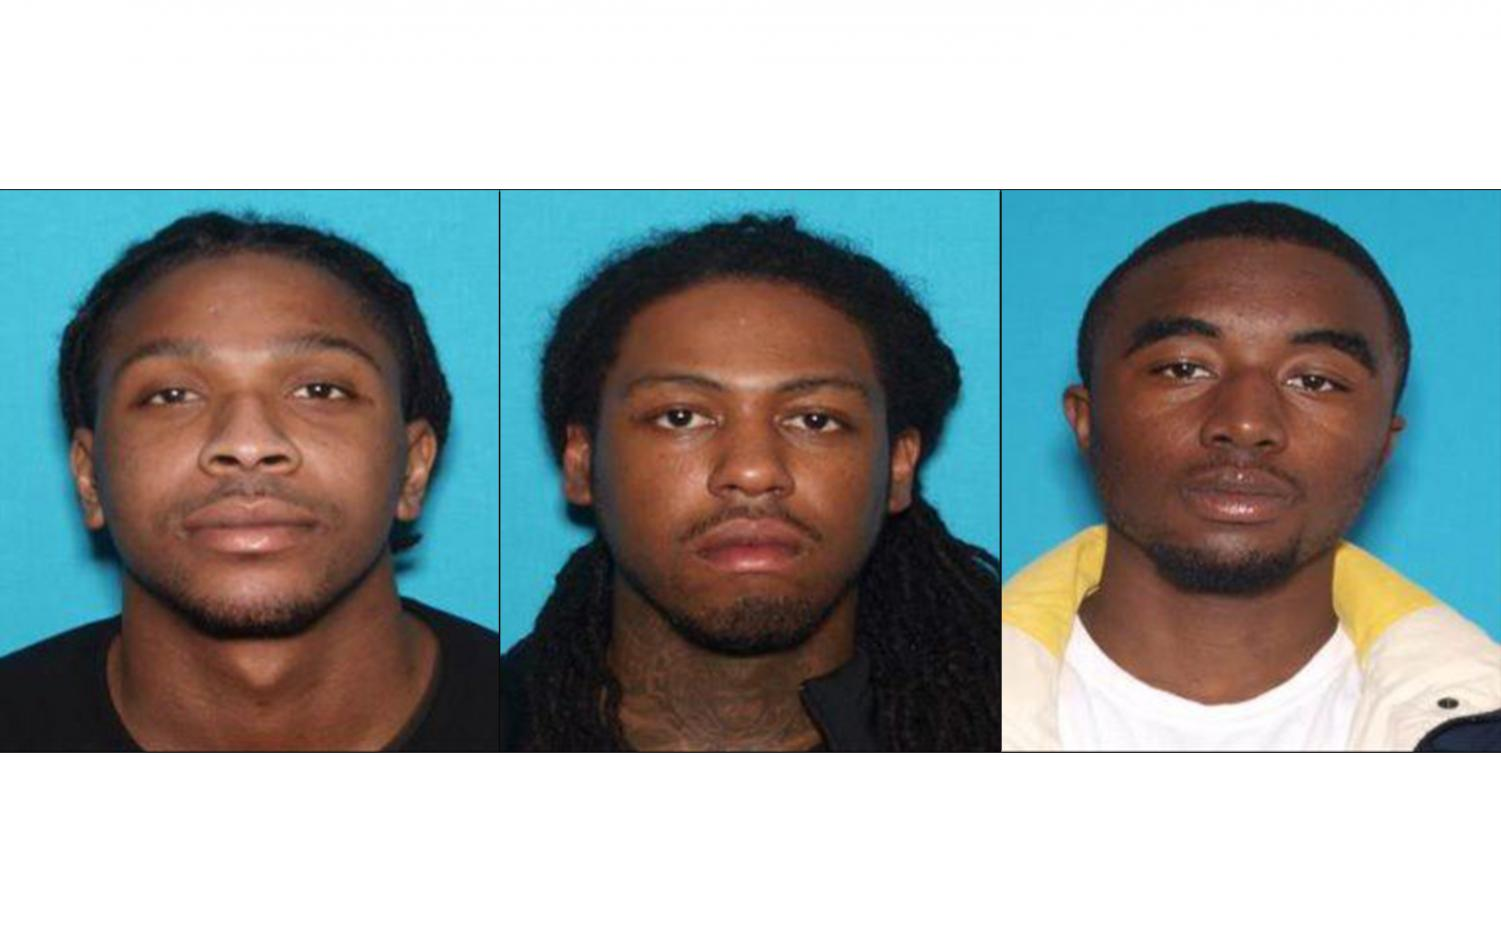 Left to right: Olando Sheron, 24 years old of Sikeston, Missouri; Thomas Durell Evans, 30 years old of Cape Girardeau, Missouri; Tyren Johnson, 21 years old of Sikeston, Missouri. Johnson and Evans are both being held in Missouri, pending extradition to Illinois.